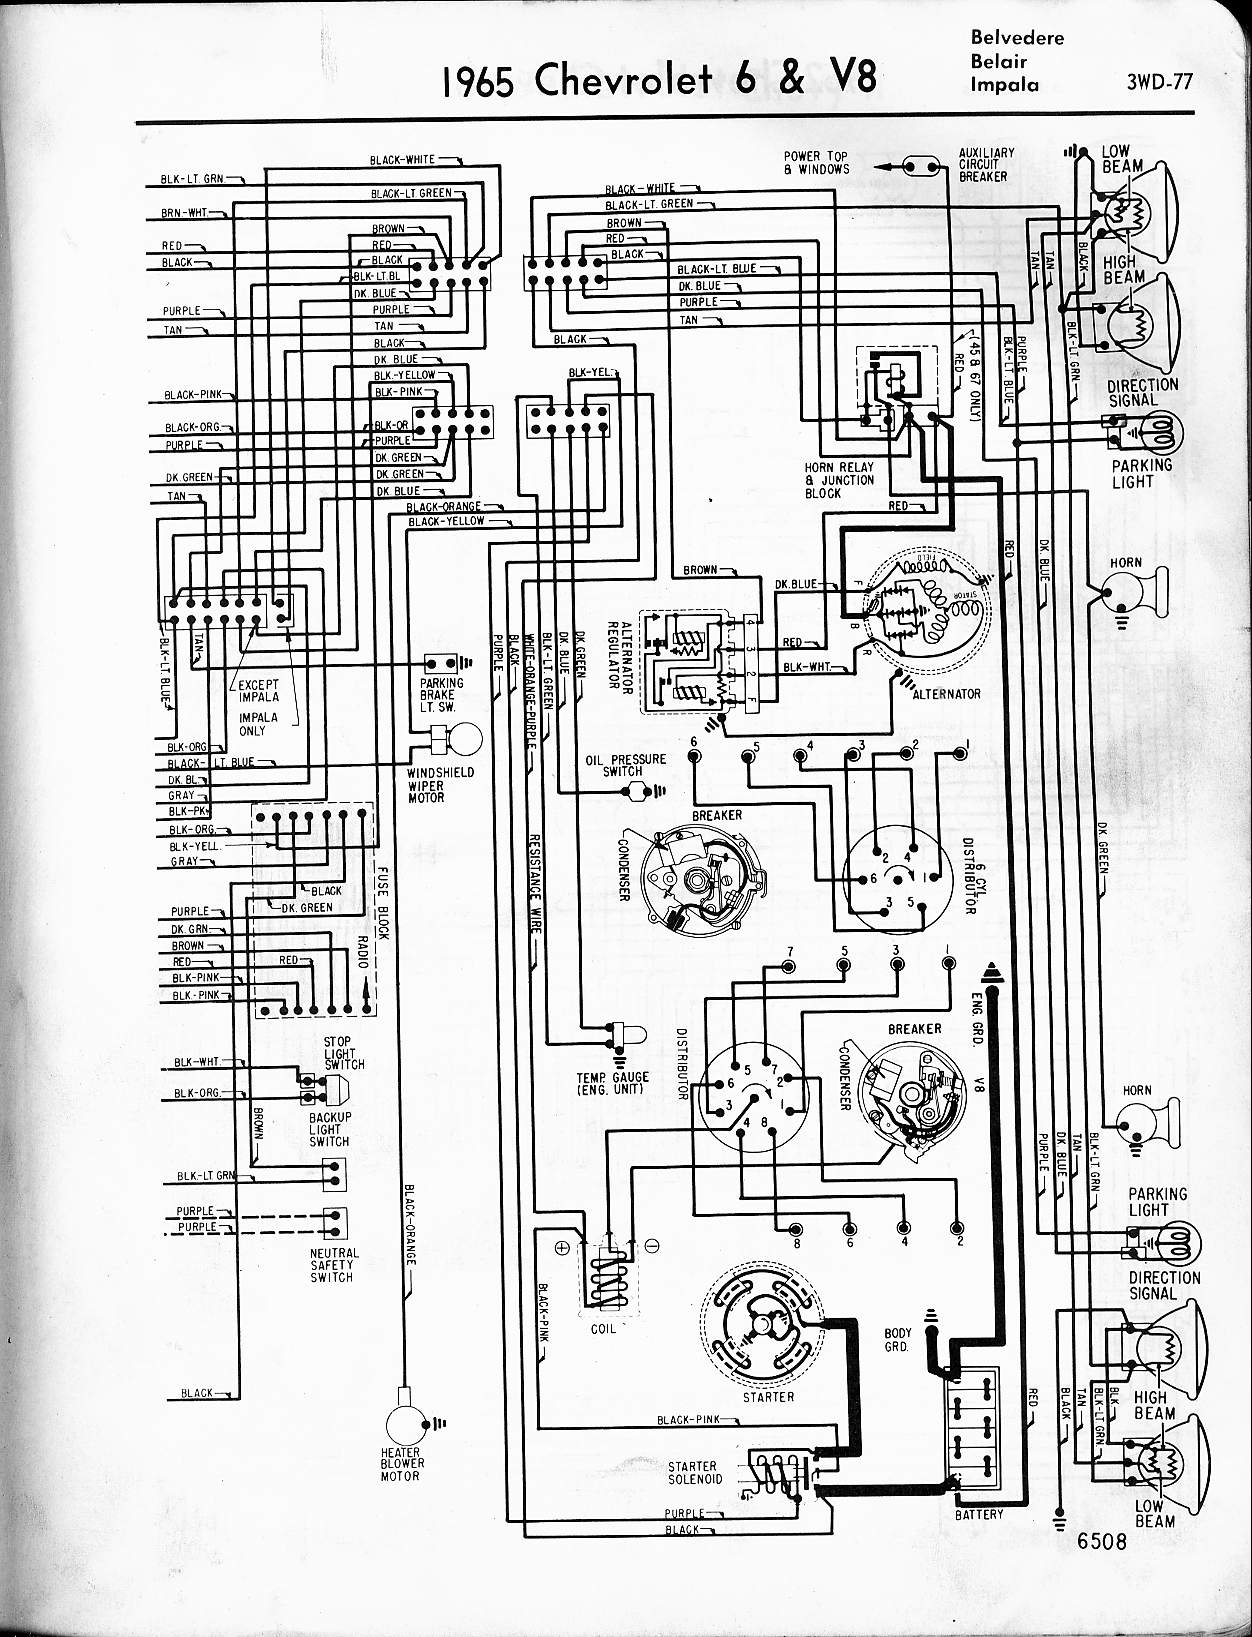 131480965062 as well 67 Chevelle Dash Wiring Diagram Wiring Diagrams likewise 3nbnl 69 Camaro Column Locking Plate Turn Signal Cam Assembly additionally 381144193079 likewise Steering Gear Column 647 1. on 1966 chevy truck steering column wiring diagram